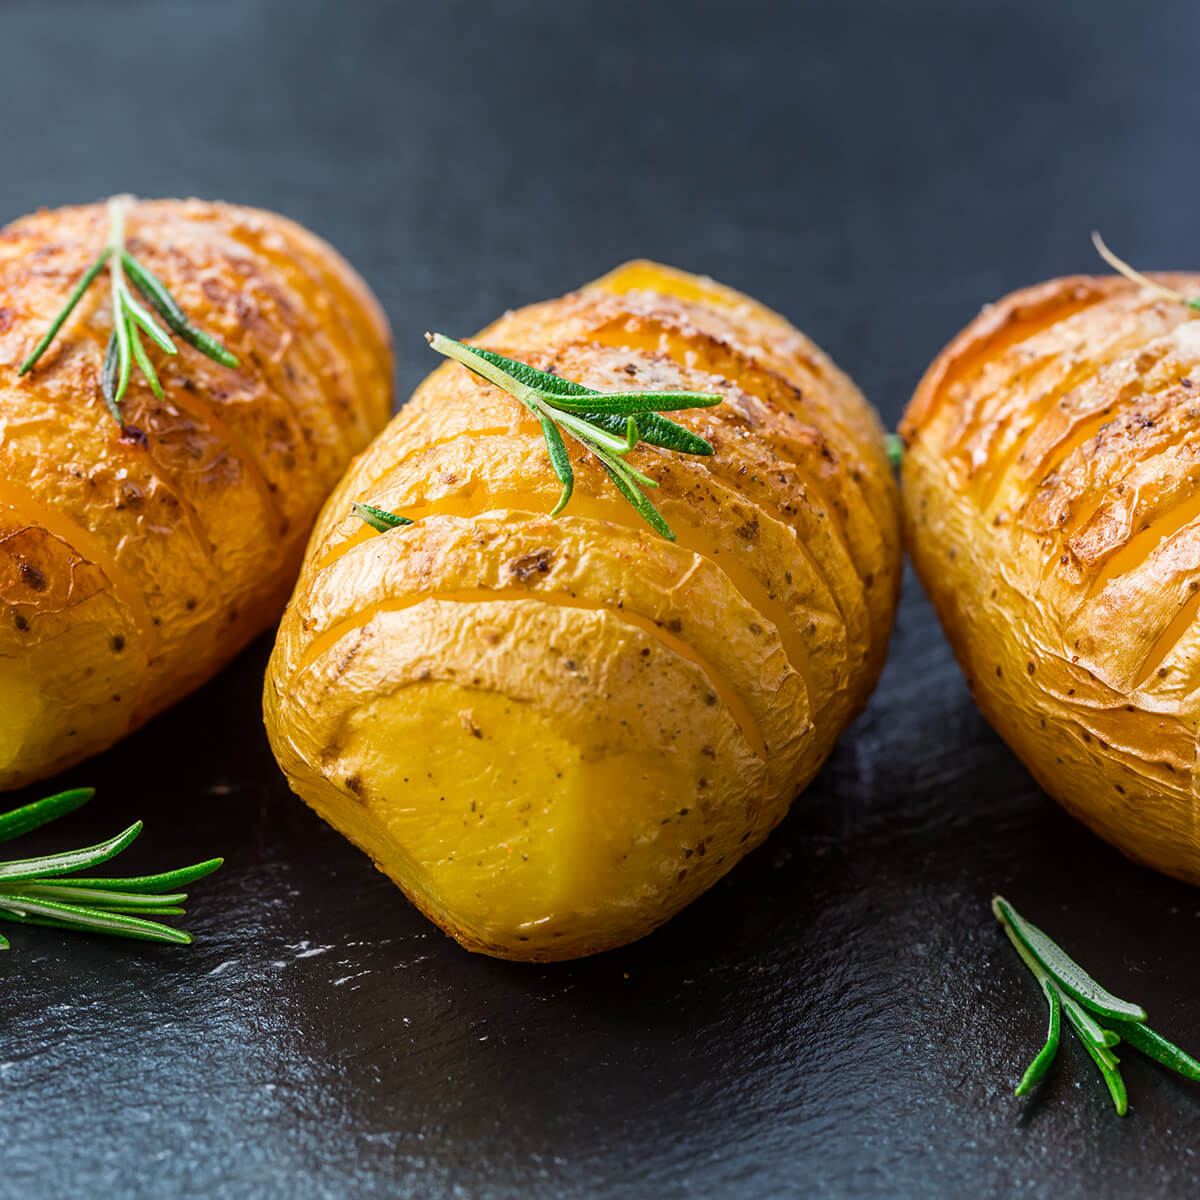 hasselback potatoes are one of the 21 Best Vegan Christmas Dinner Recipes